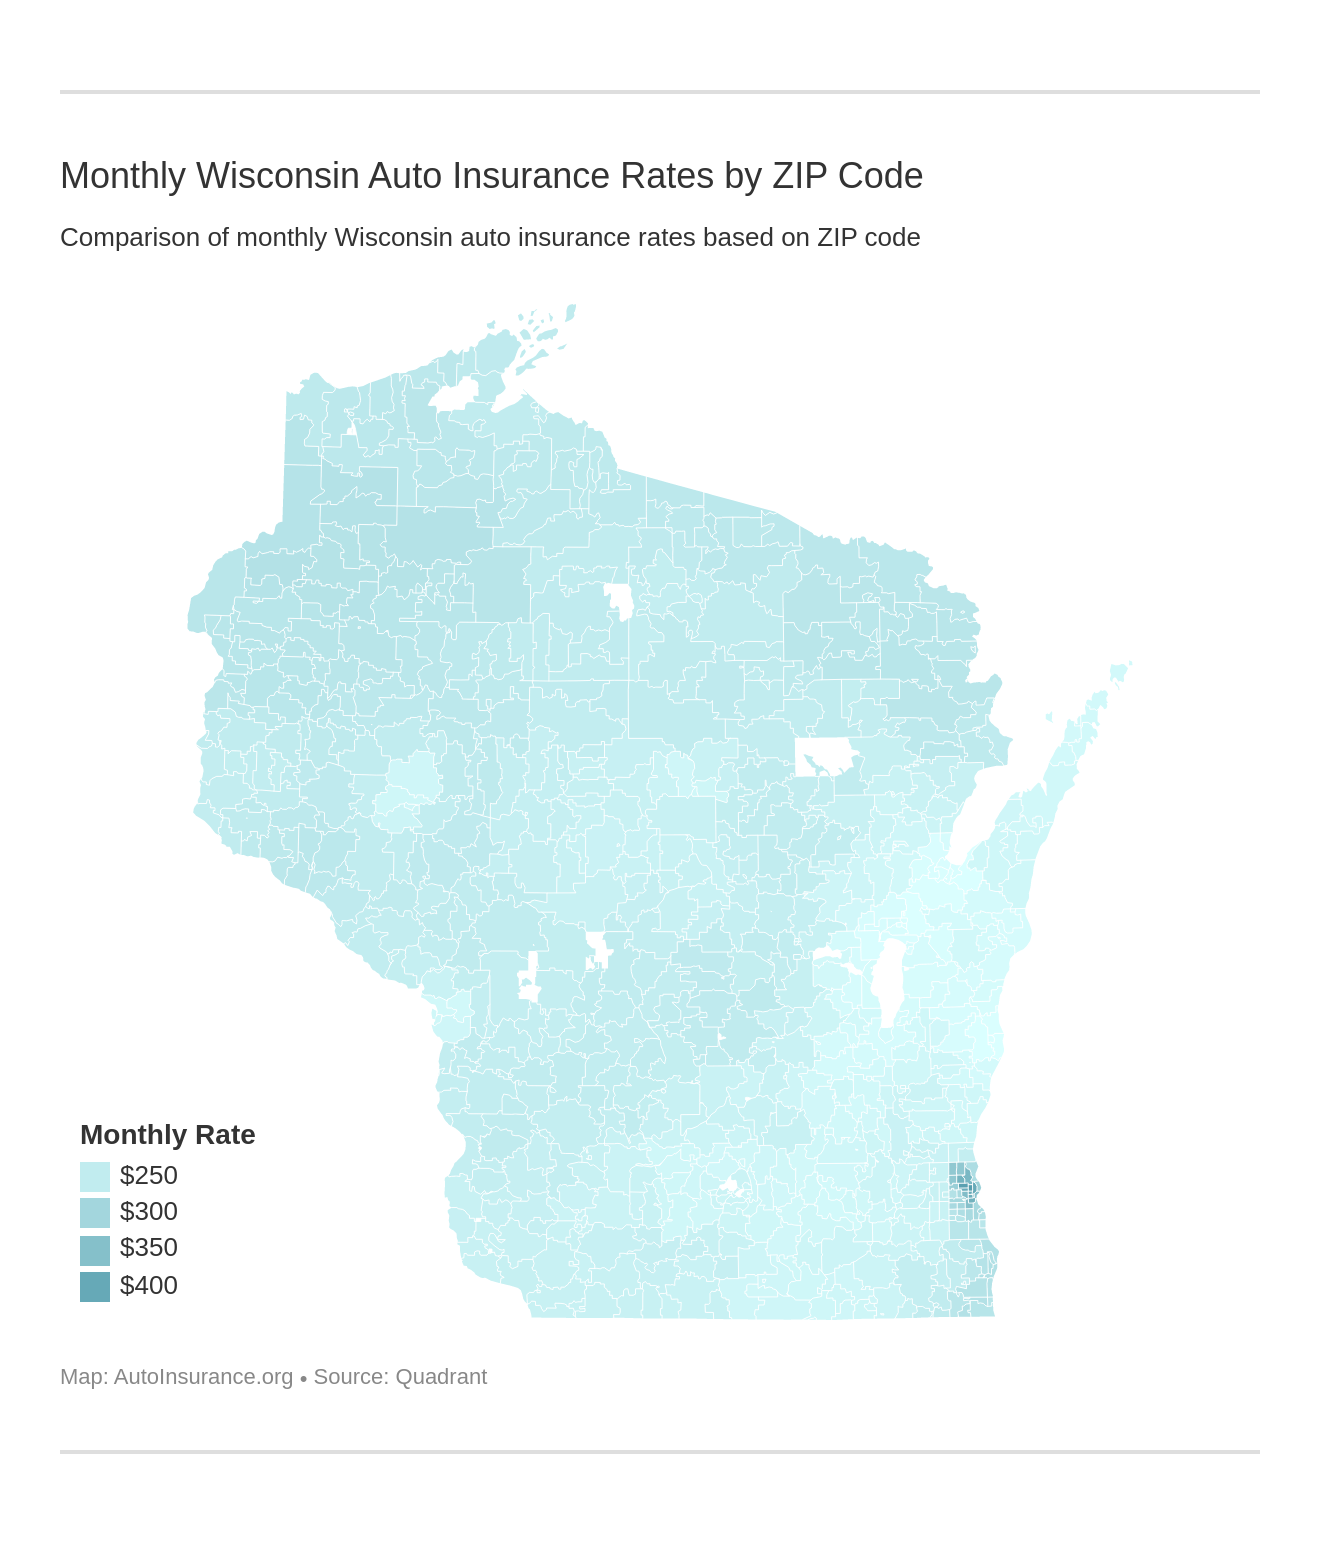 Monthly Wisconsin Auto Insurance Rates by ZIP Code